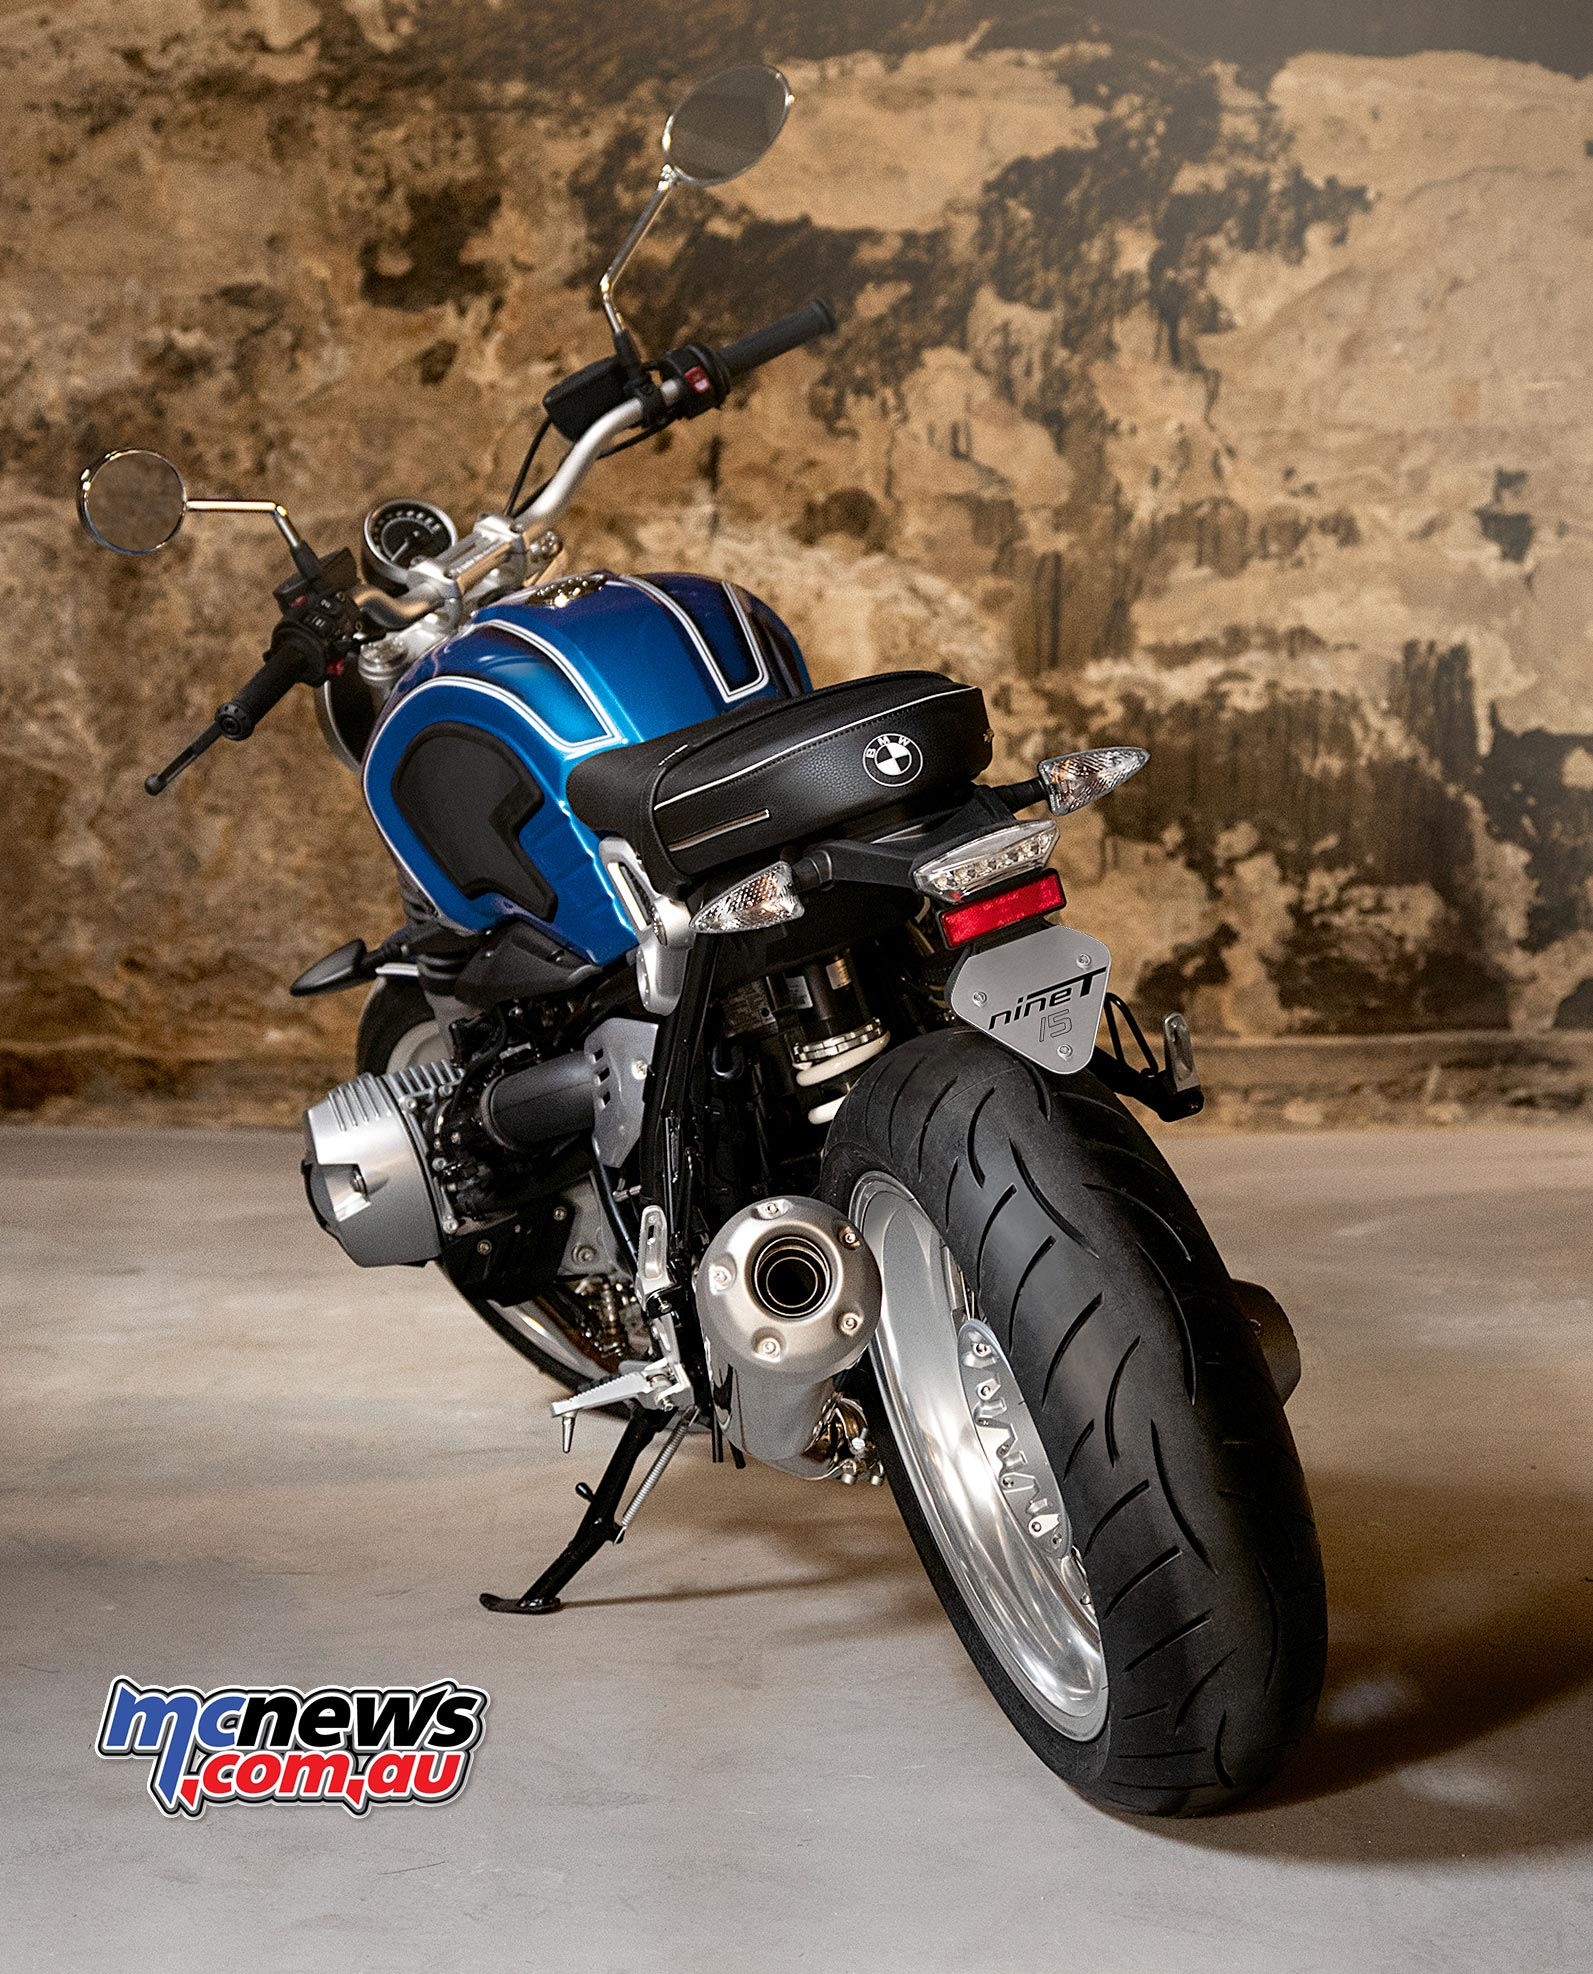 A mix of old and new for the anniversay BMW R nineT /5